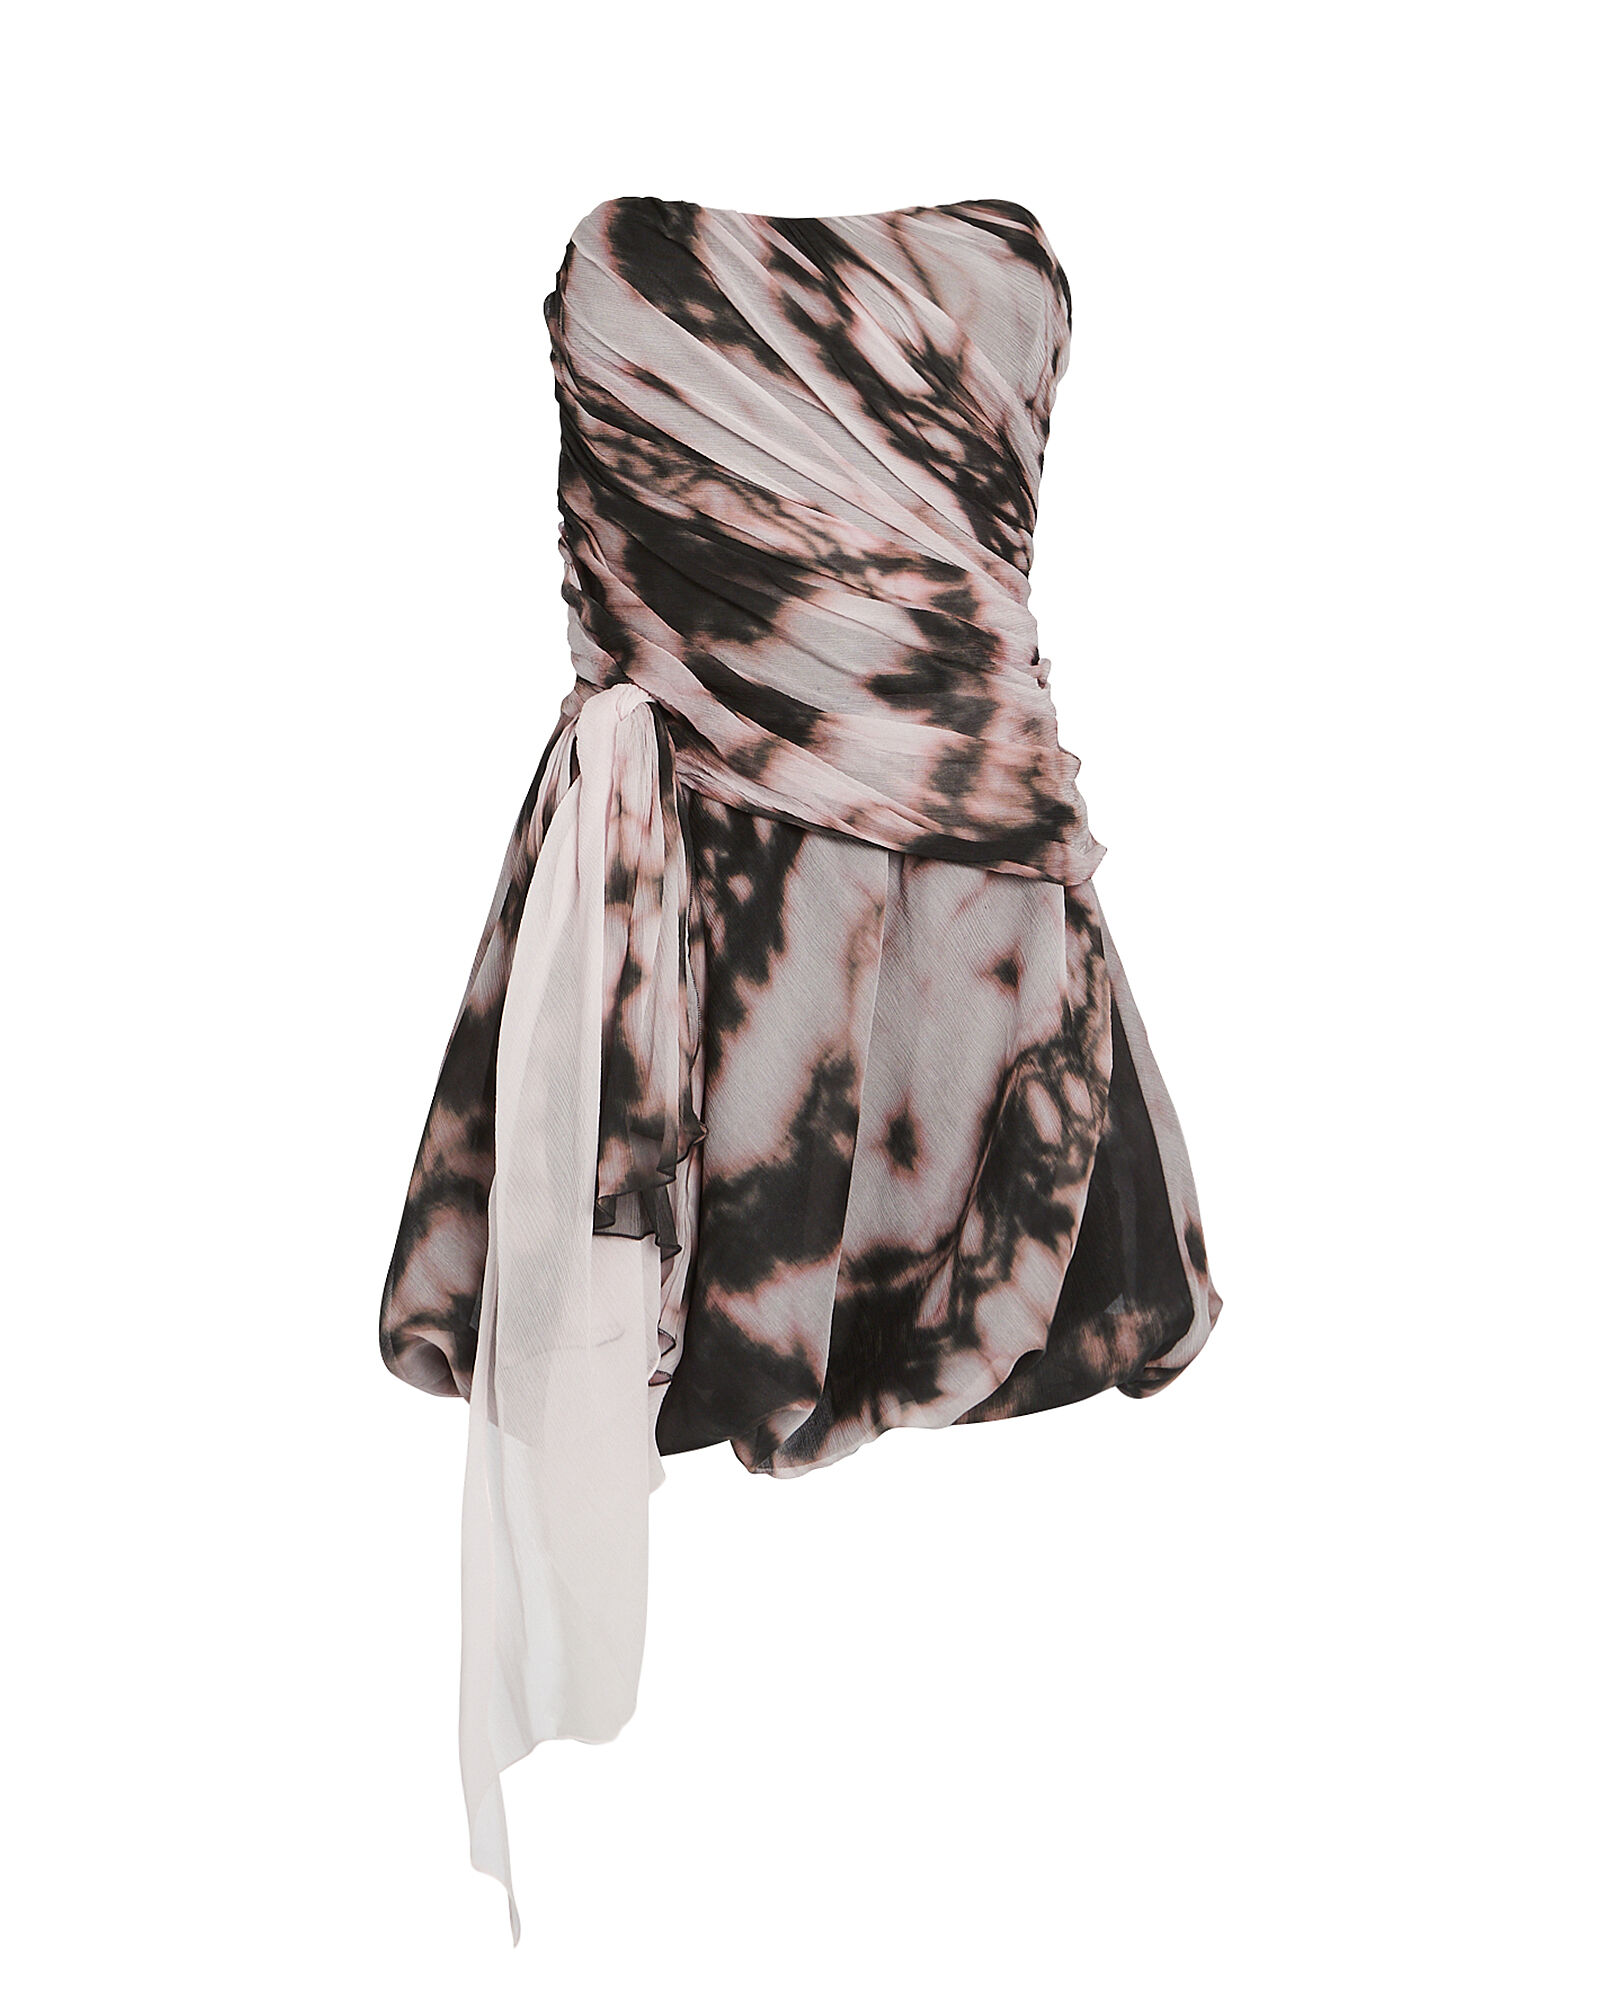 Draped Tie-Dye Bustier Dress, BLUSH/CHARCOAL TIE-DYE, hi-res